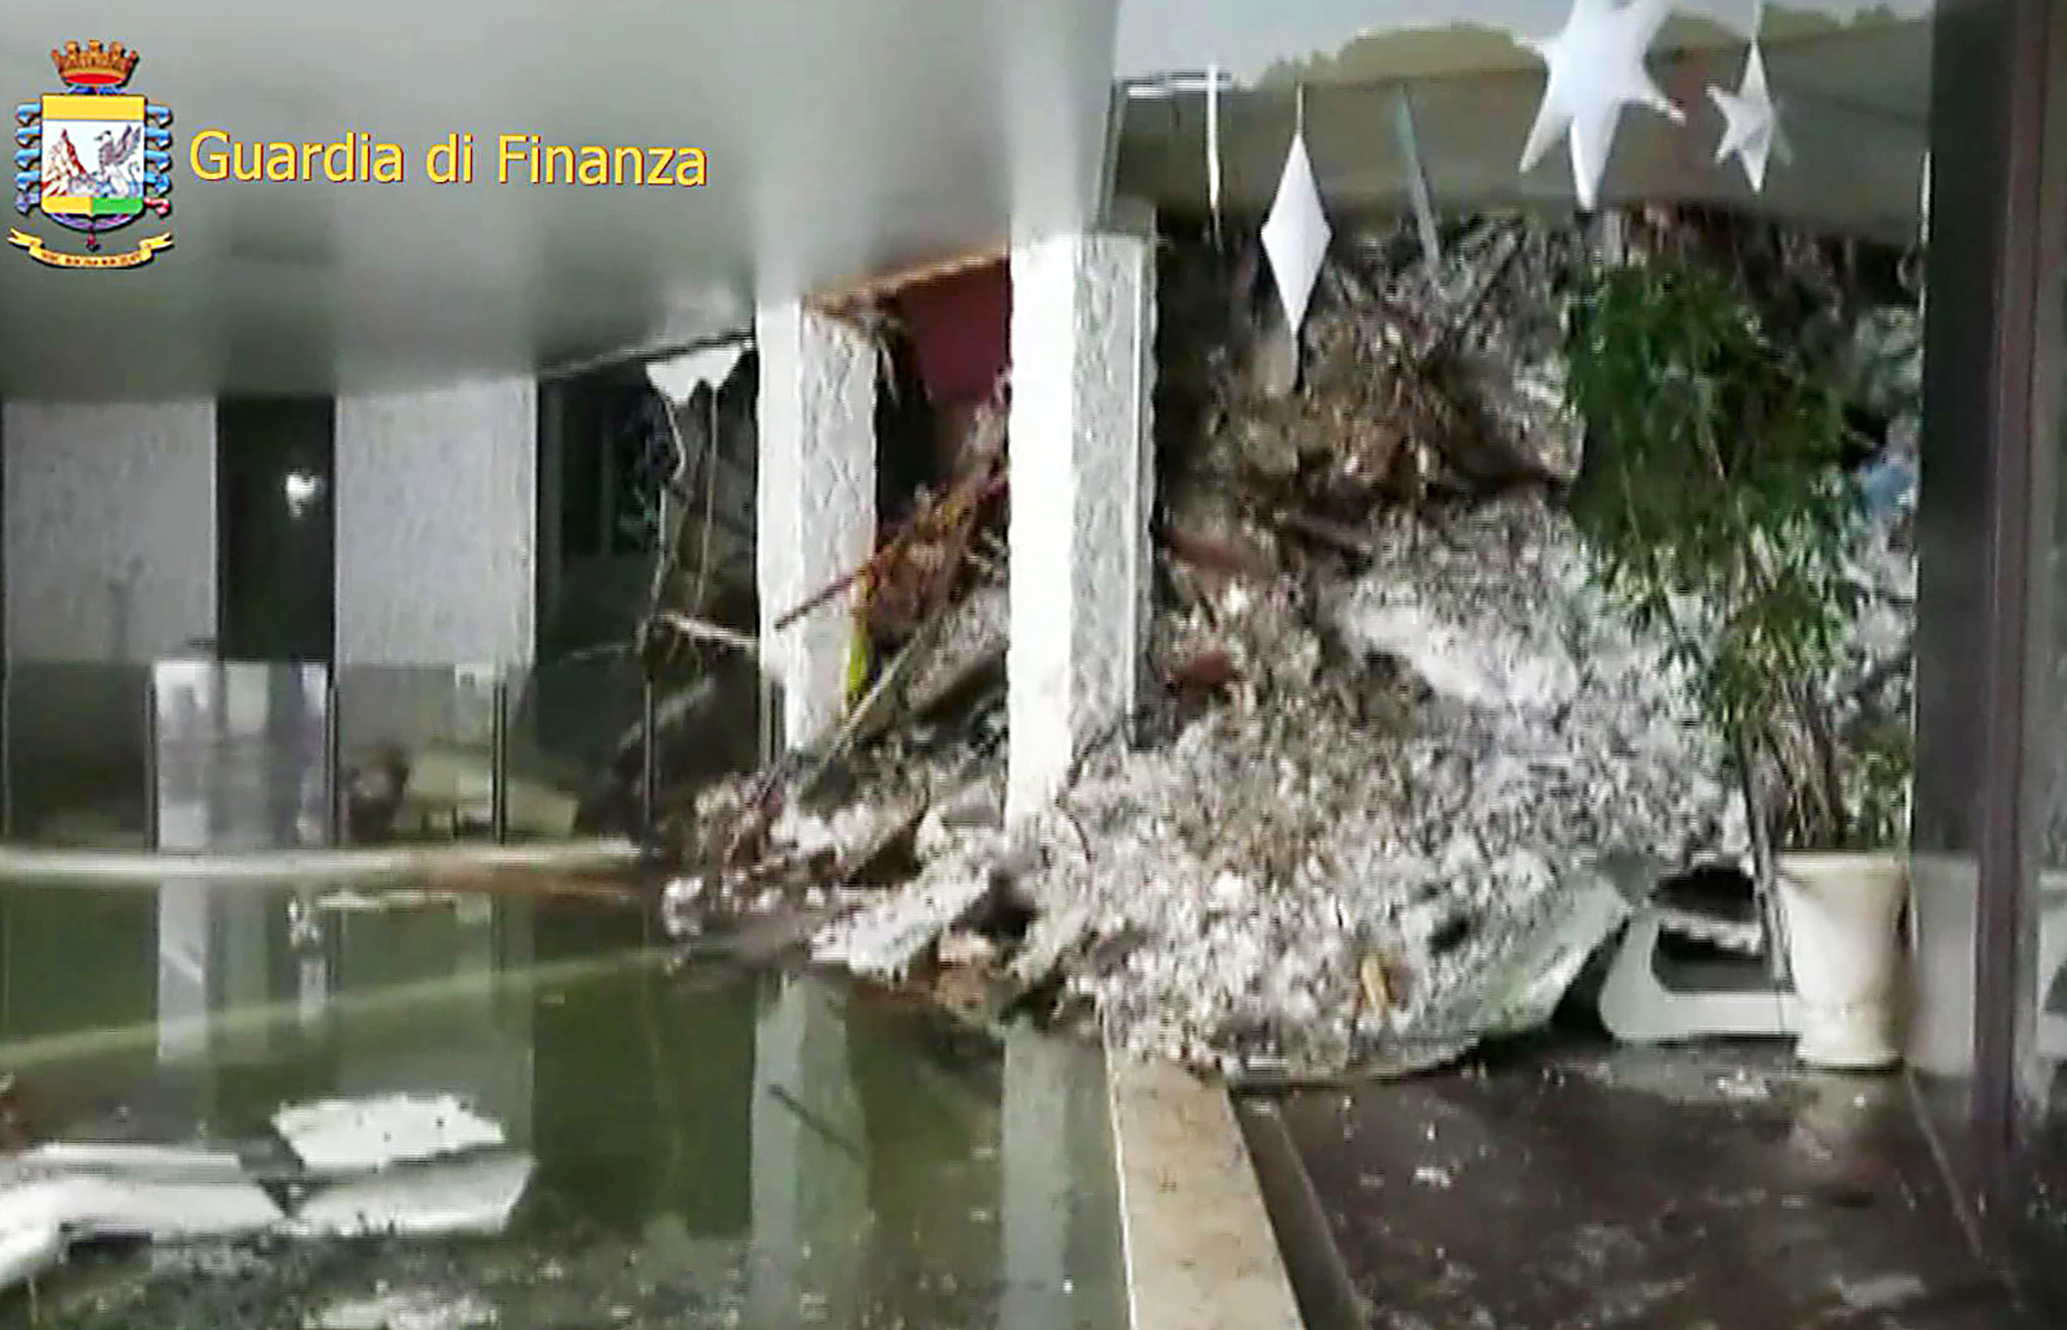 "This image grab made from a video handout released by the Guardia di Finanza on January 19, 2017 shows a wall of snow engulfing the inside of the Hotel Rigopiano, near the village of Farindola, on the eastern lower slopes of the Gran Sasso mountain. Up to 30 people were feared to have died after an Italian mountain Hotel Rigopiano was engulfed by a powerful avalanche in the earthquake-ravaged centre of the country. Italy's Civil Protection agency confirmed the Hotel Rigopiano had been engulfed by a two-metre (six-feet) high wall of snow and that emergency services were struggling to get ambulances and diggers to the site. / AFP PHOTO / Guardia di Finanza press office / Handout / RESTRICTED TO EDITORIAL USE - MANDATORY CREDIT ""AFP PHOTO / GUARDIA DI FINANZA "" - NO MARKETING NO ADVERTISING CAMPAIGNS - DISTRIBUTED AS A SERVICE TO CLIENTS"